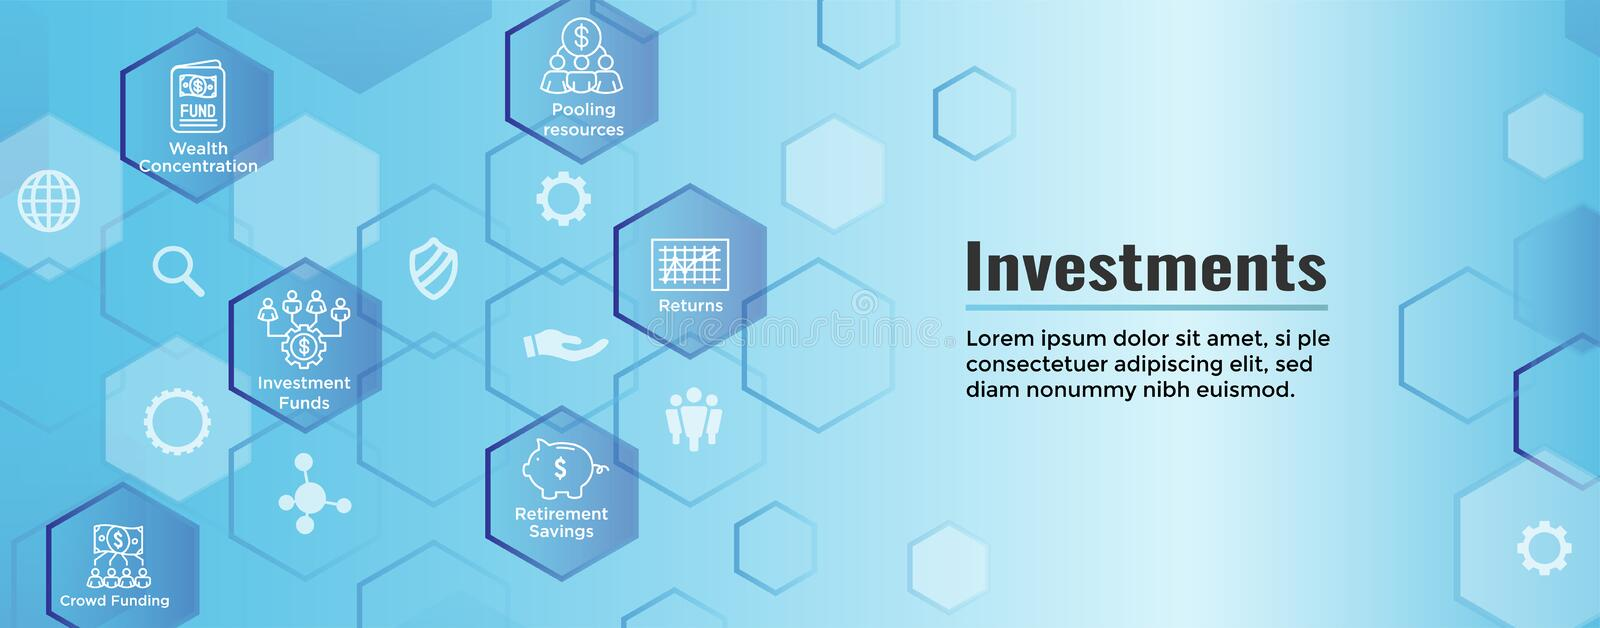 Retirement Investments, Dividend Income, Mutual Fund, IRA Icon set Web Header Banner stock illustration